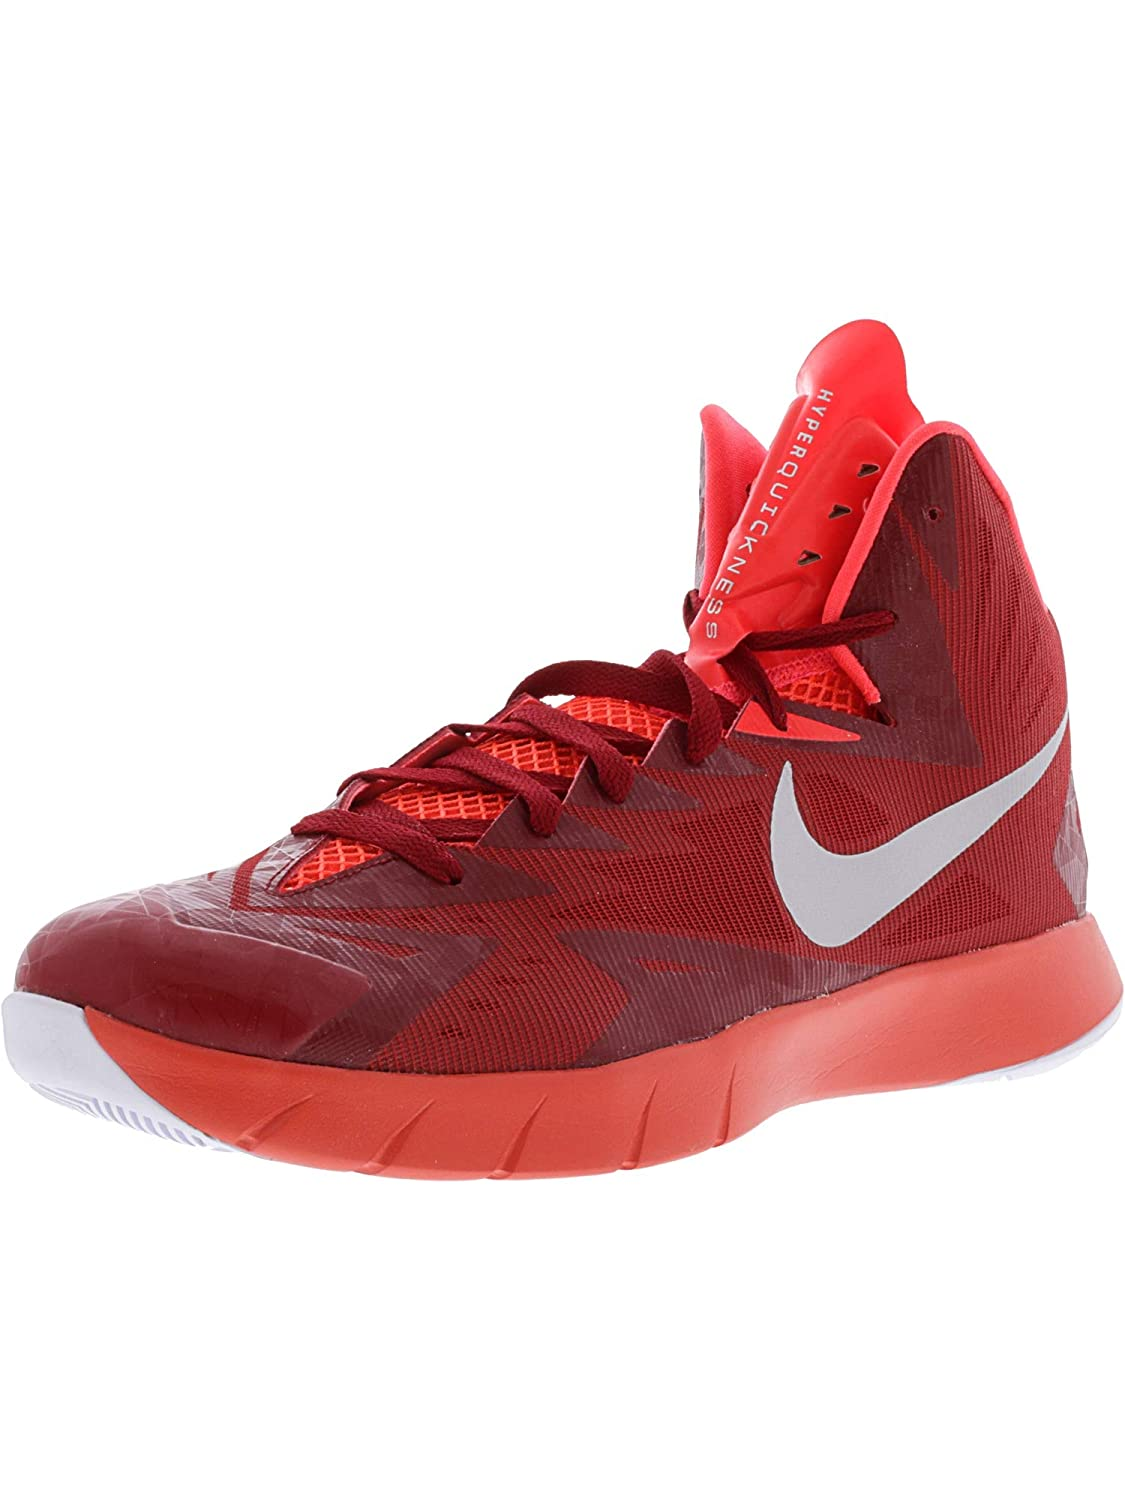 timeless design b8da3 8c808 Nike Men s Lunar Hyperquickness Tb Gym Red Metallic Silver Bright Crimson  Ankle-High Basketball Shoe - 18M  Buy Online at Low Prices in India -  Amazon.in